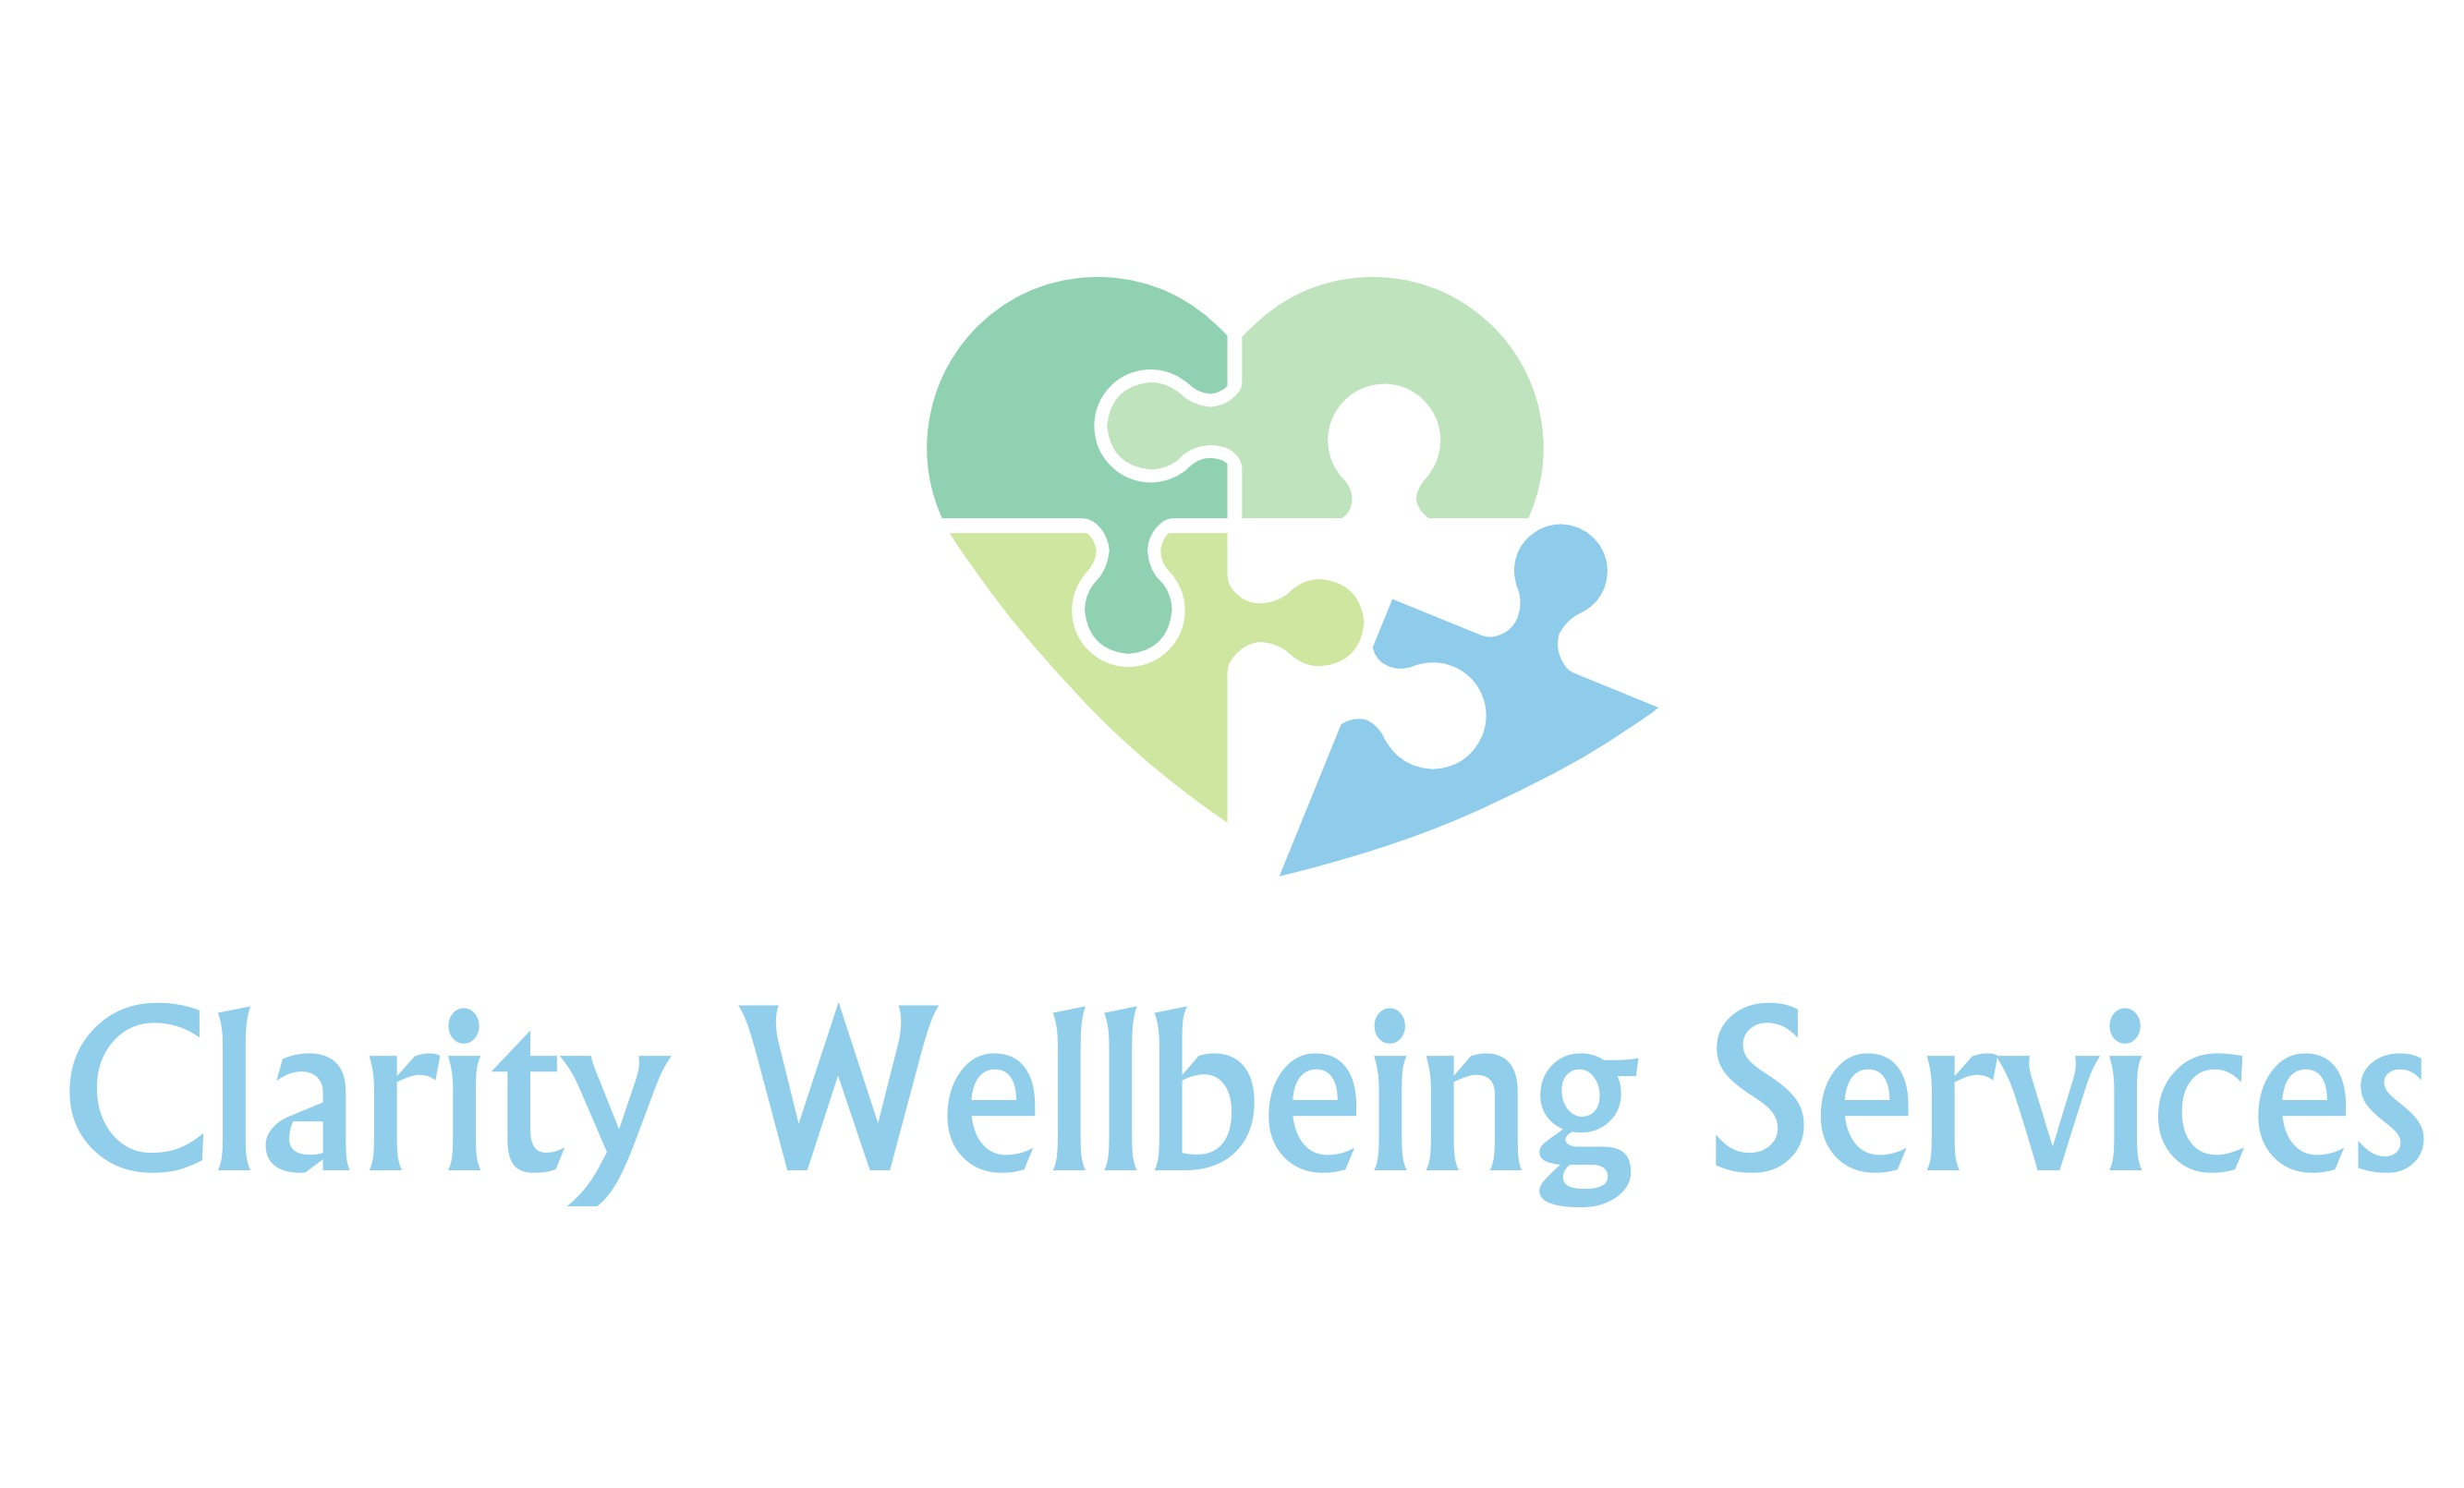 Clarity Wellbeing Services